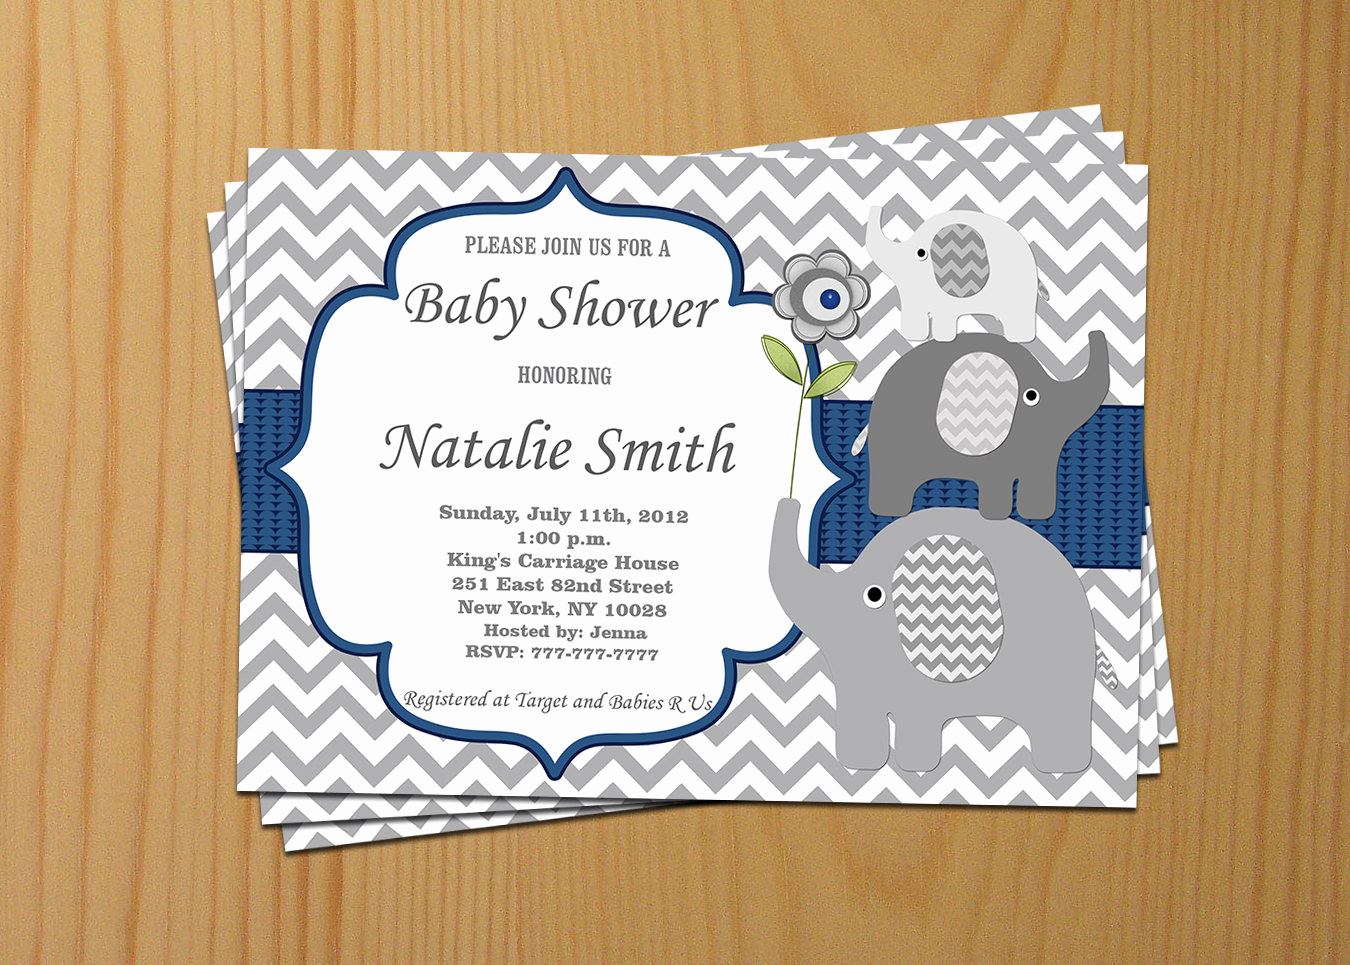 Baby Shower Pics for Invitation Inspirational Elephant Baby Shower Invitation Boy Baby Shower Invitation